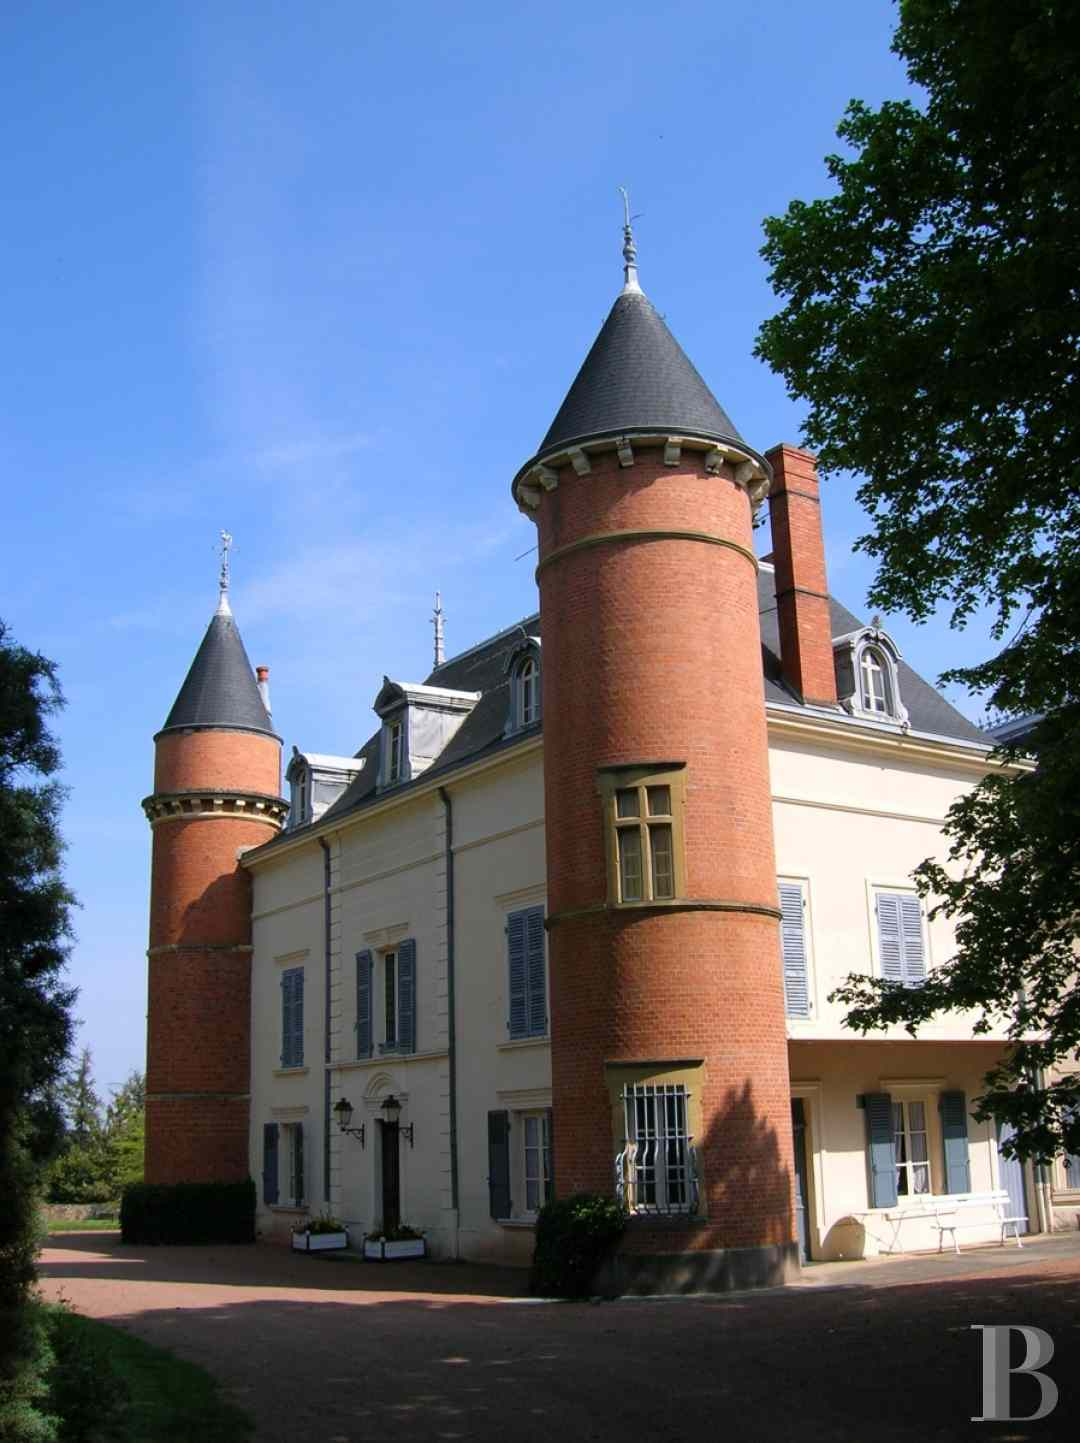 chateaux for sale France rhones alps castles chateaux - 2 zoom